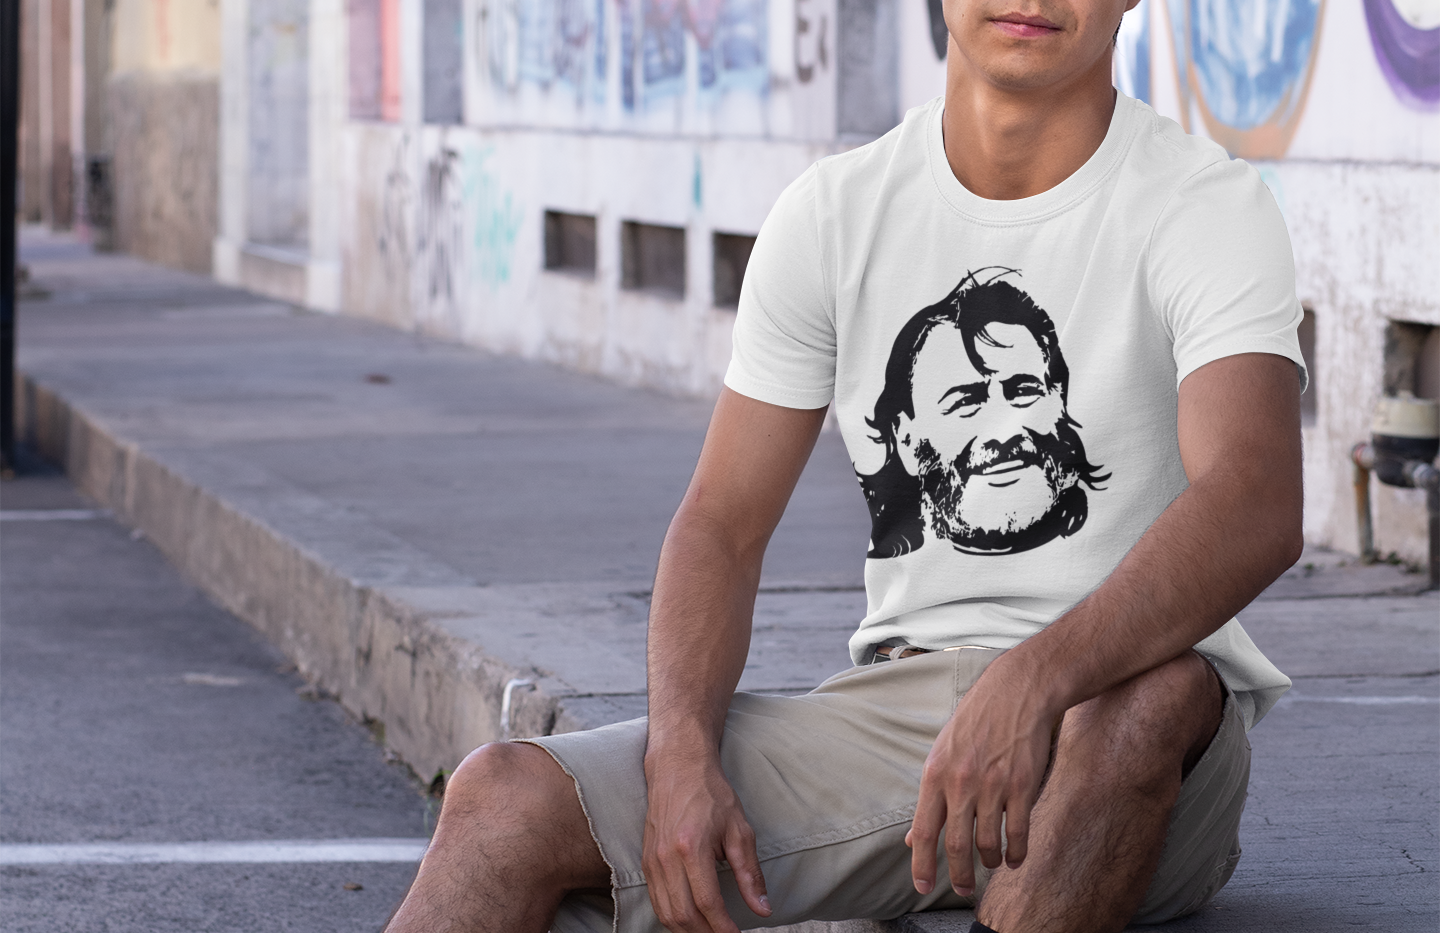 mockup-of-a-man-wearing-a-t-shirt-and-a-